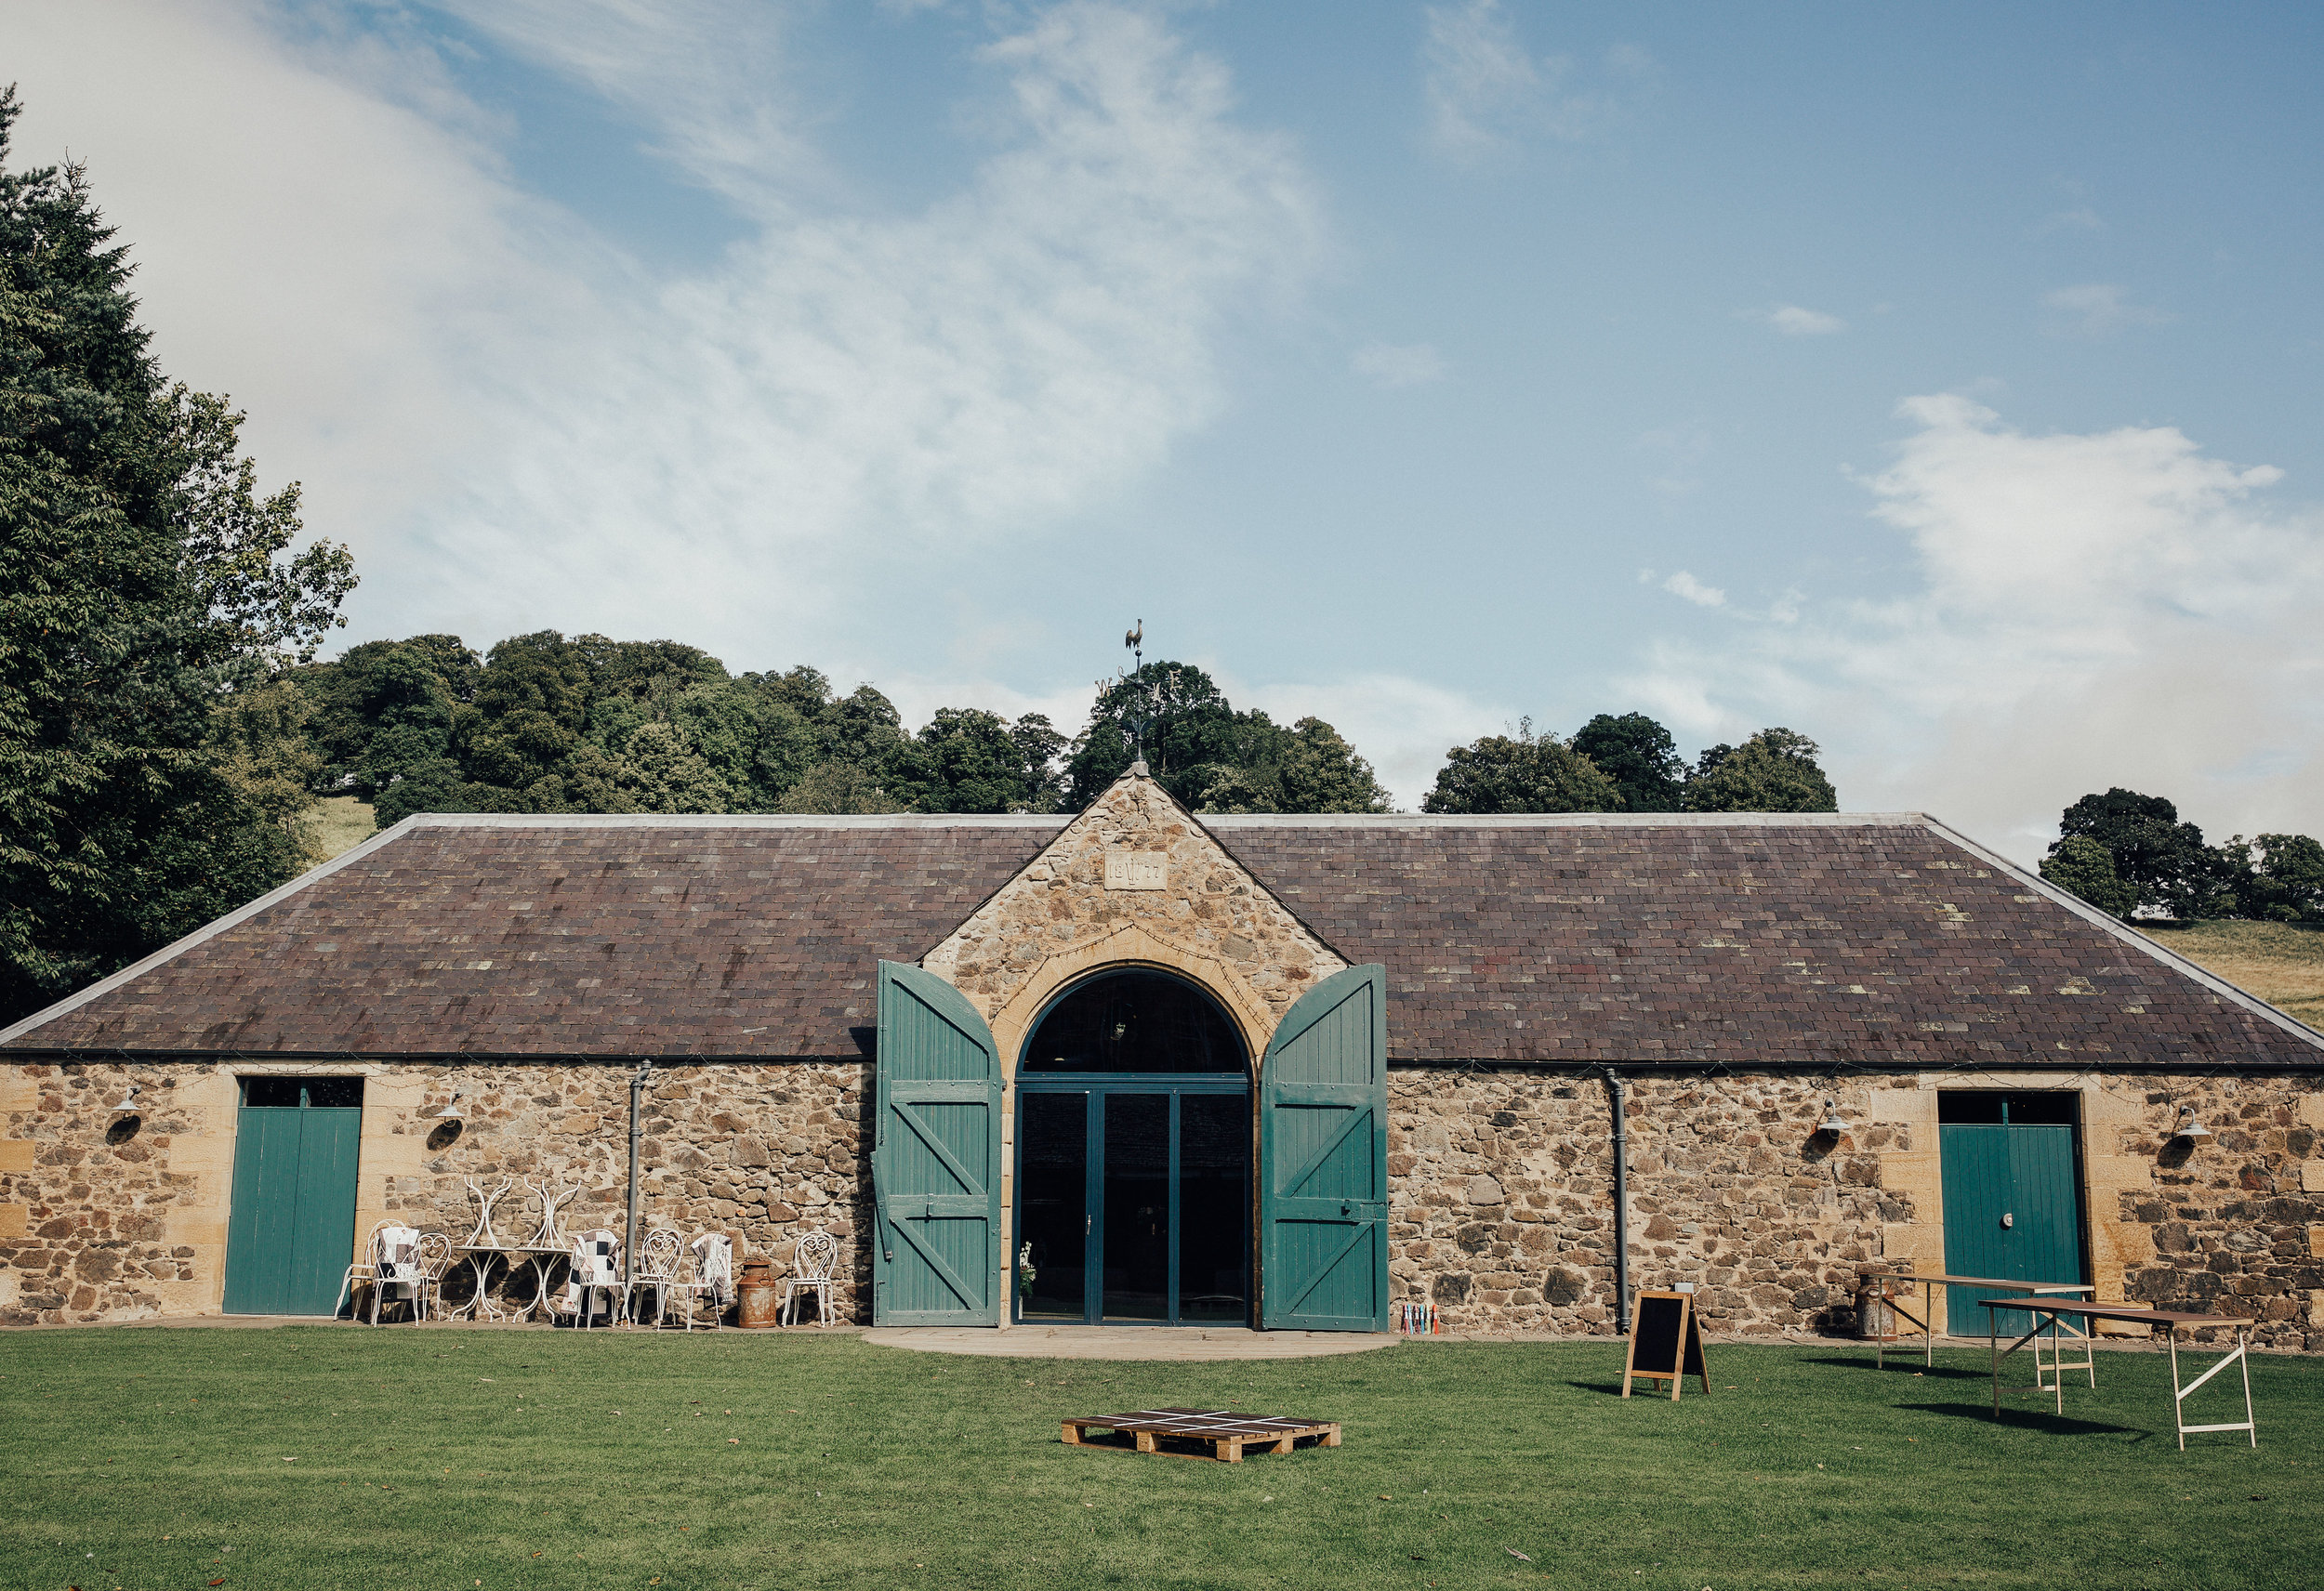 BYRE_AT_INCHYRA_WEDDING_PHOTOGRAPHER_PJ_PHILLIPS_PHOTOGRAPHY_KAYLEIGH_ANDREW_3.jpg